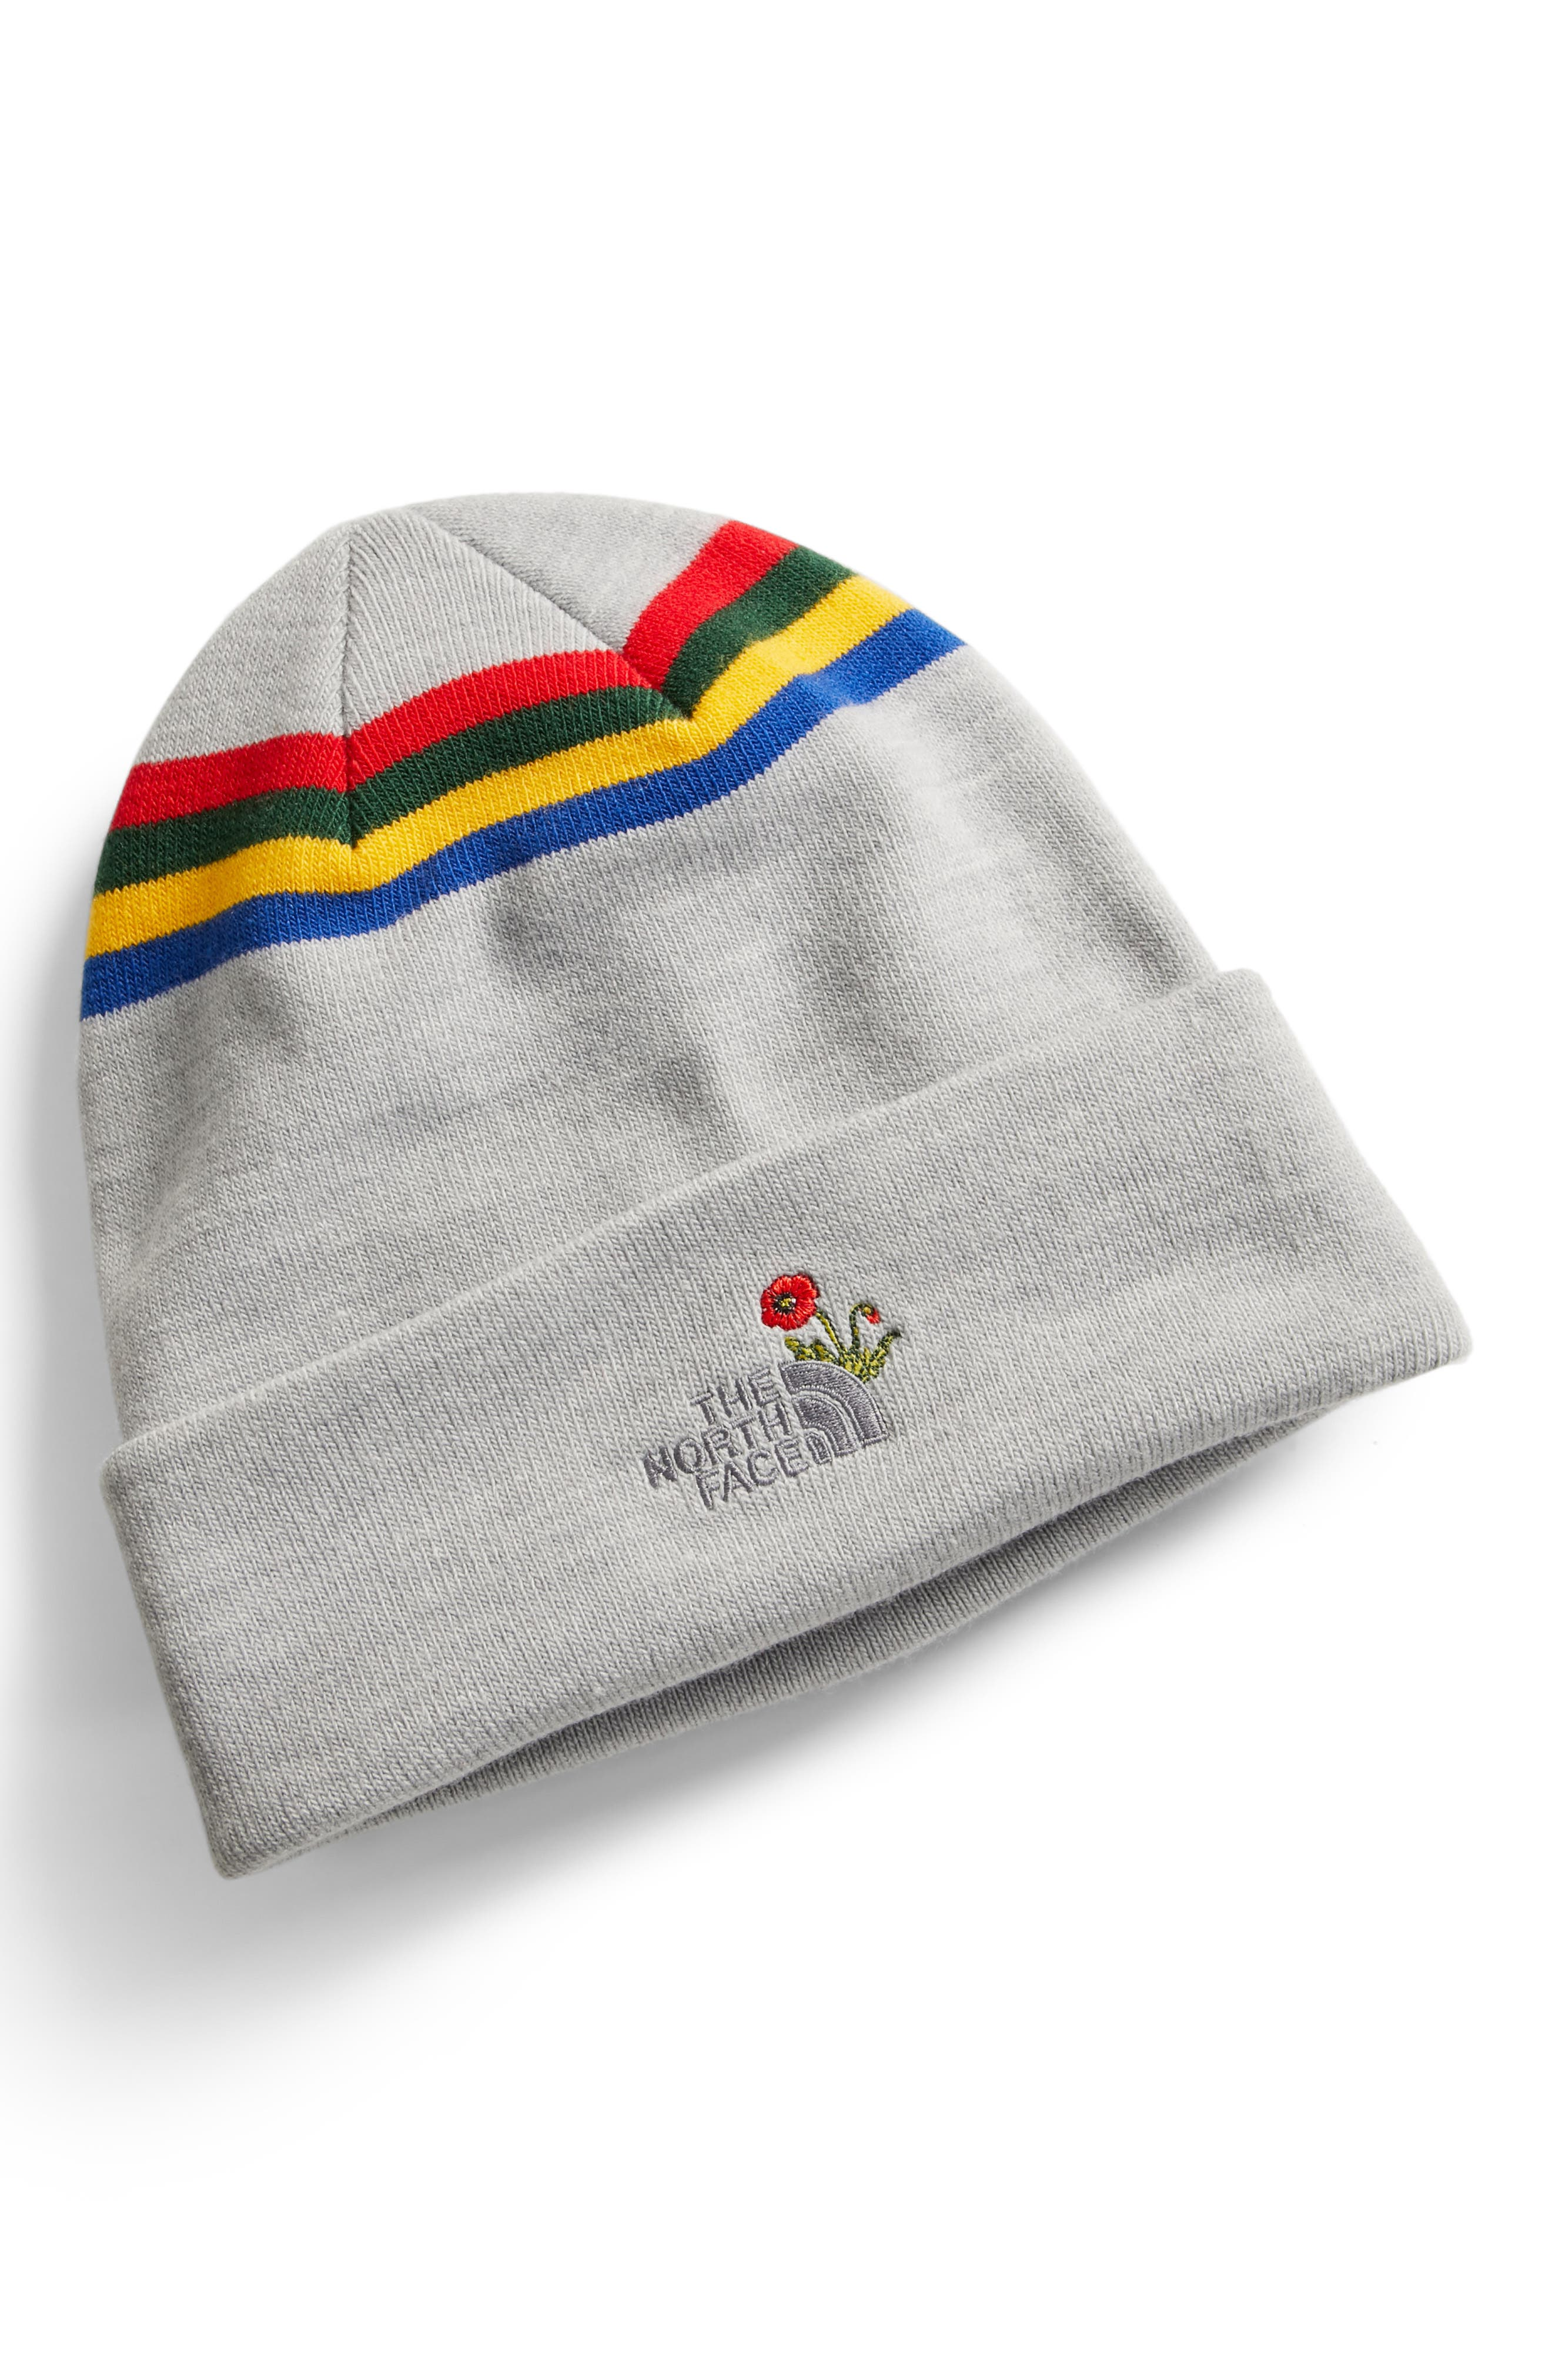 Alternate Image 1 Selected - The North Face Poppy Dock Workers Beanie